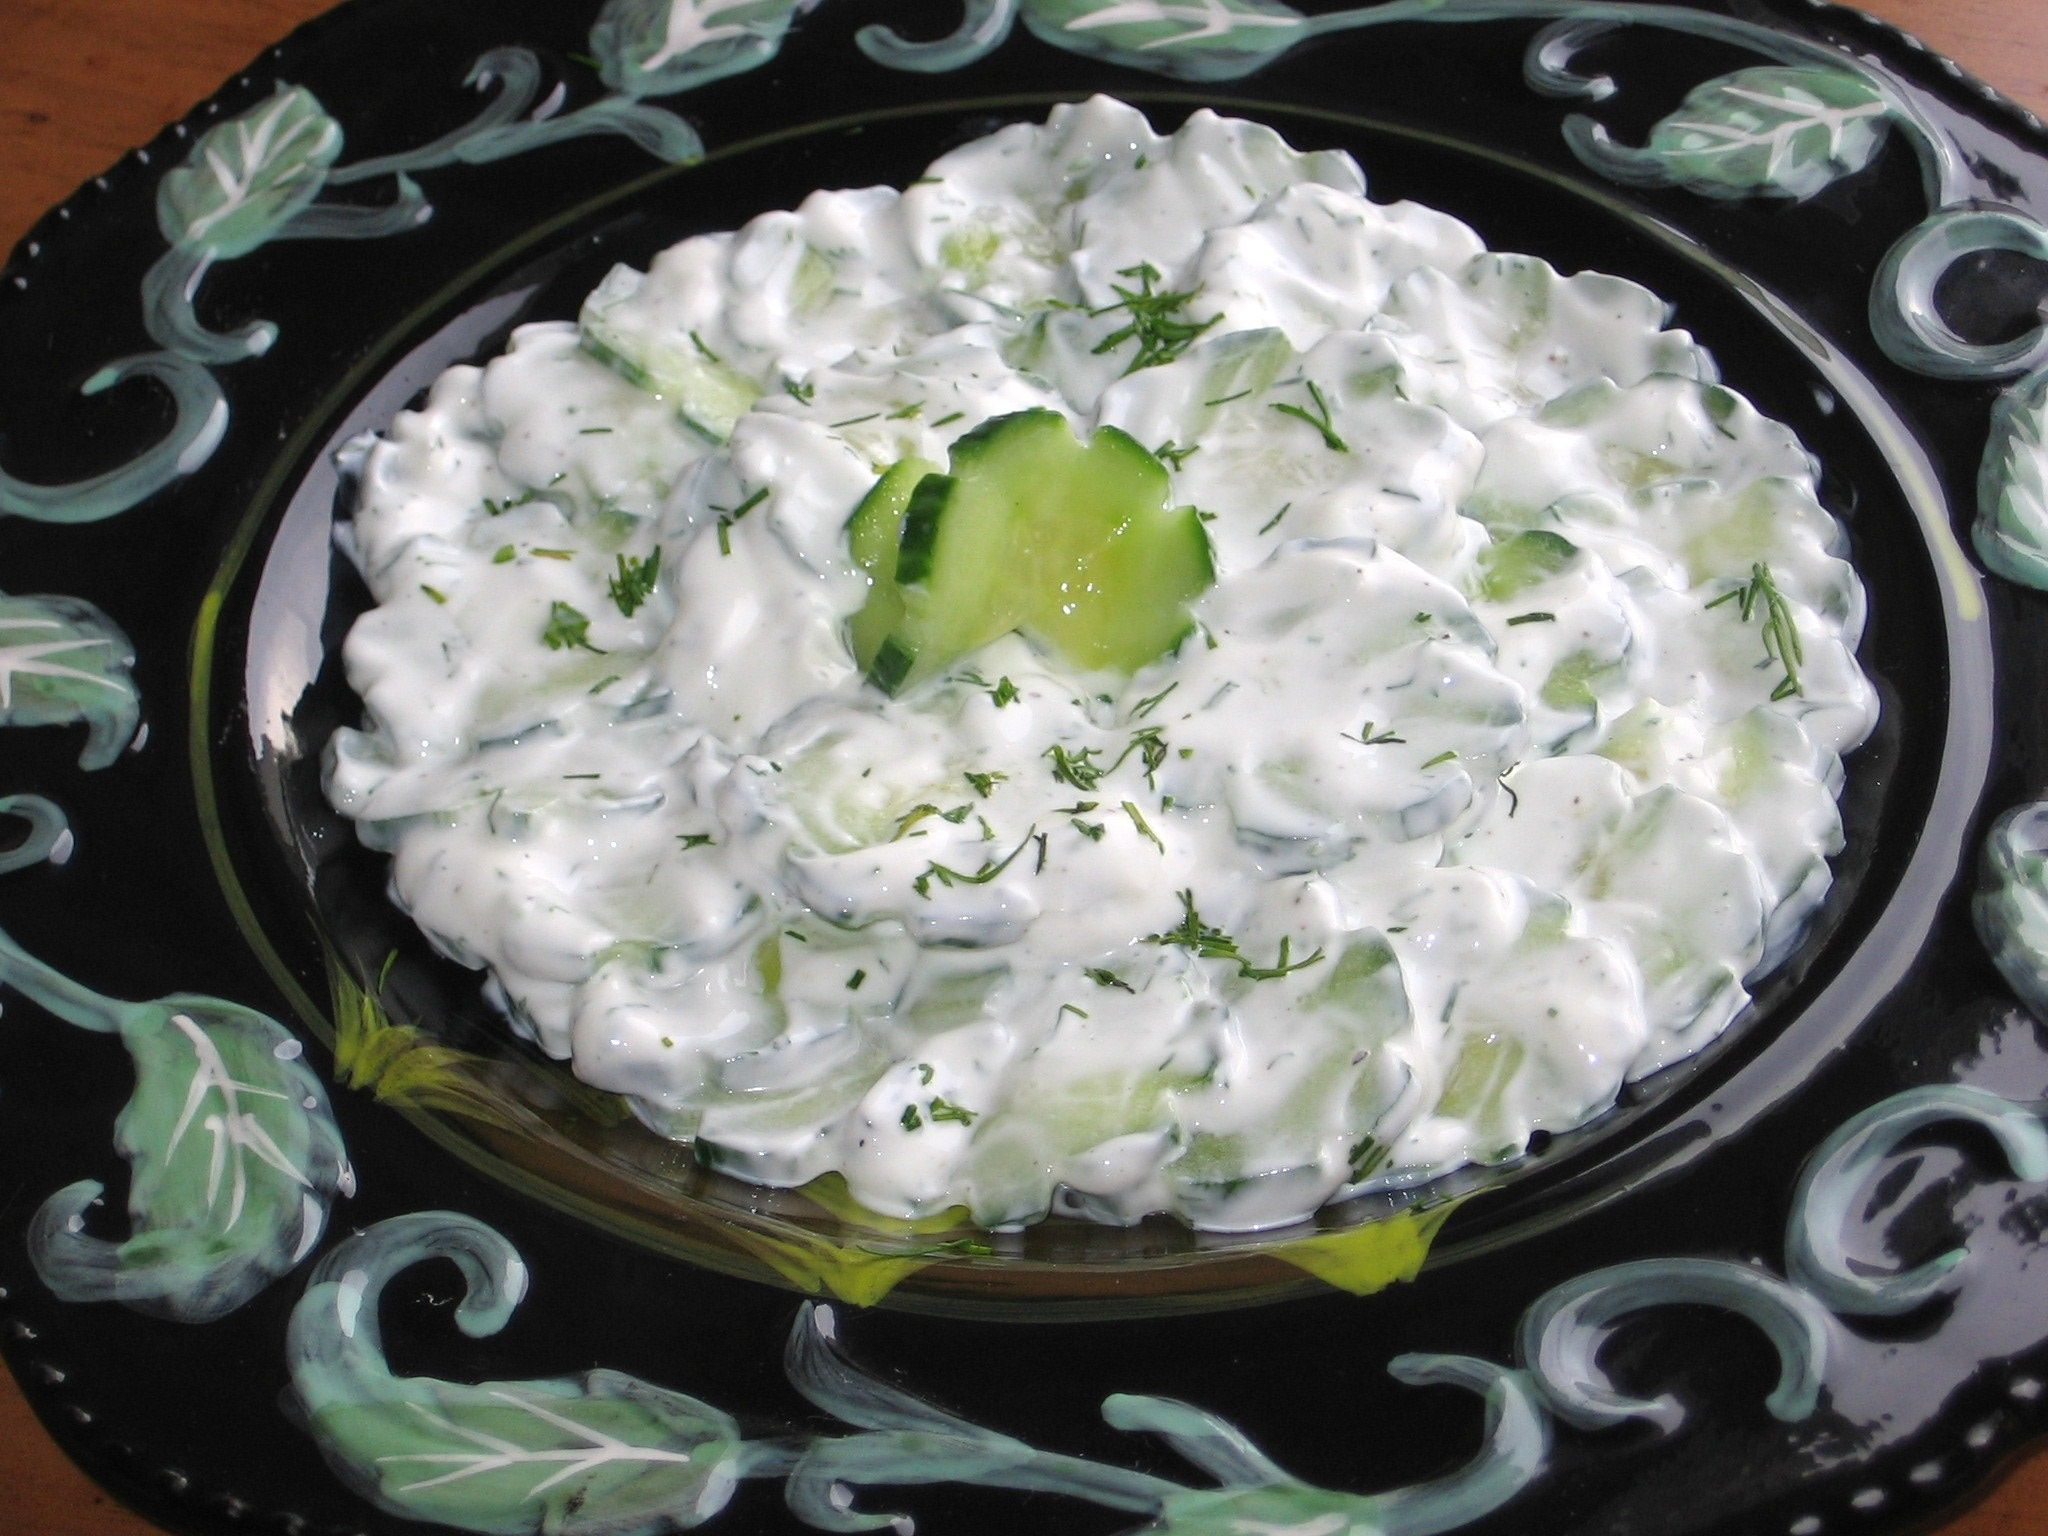 This Cooling Polish Cucumbers In Sour Cream Has An Interesting Name Recipe Sour Cream Cucumbers Recipes Eastern European Recipes